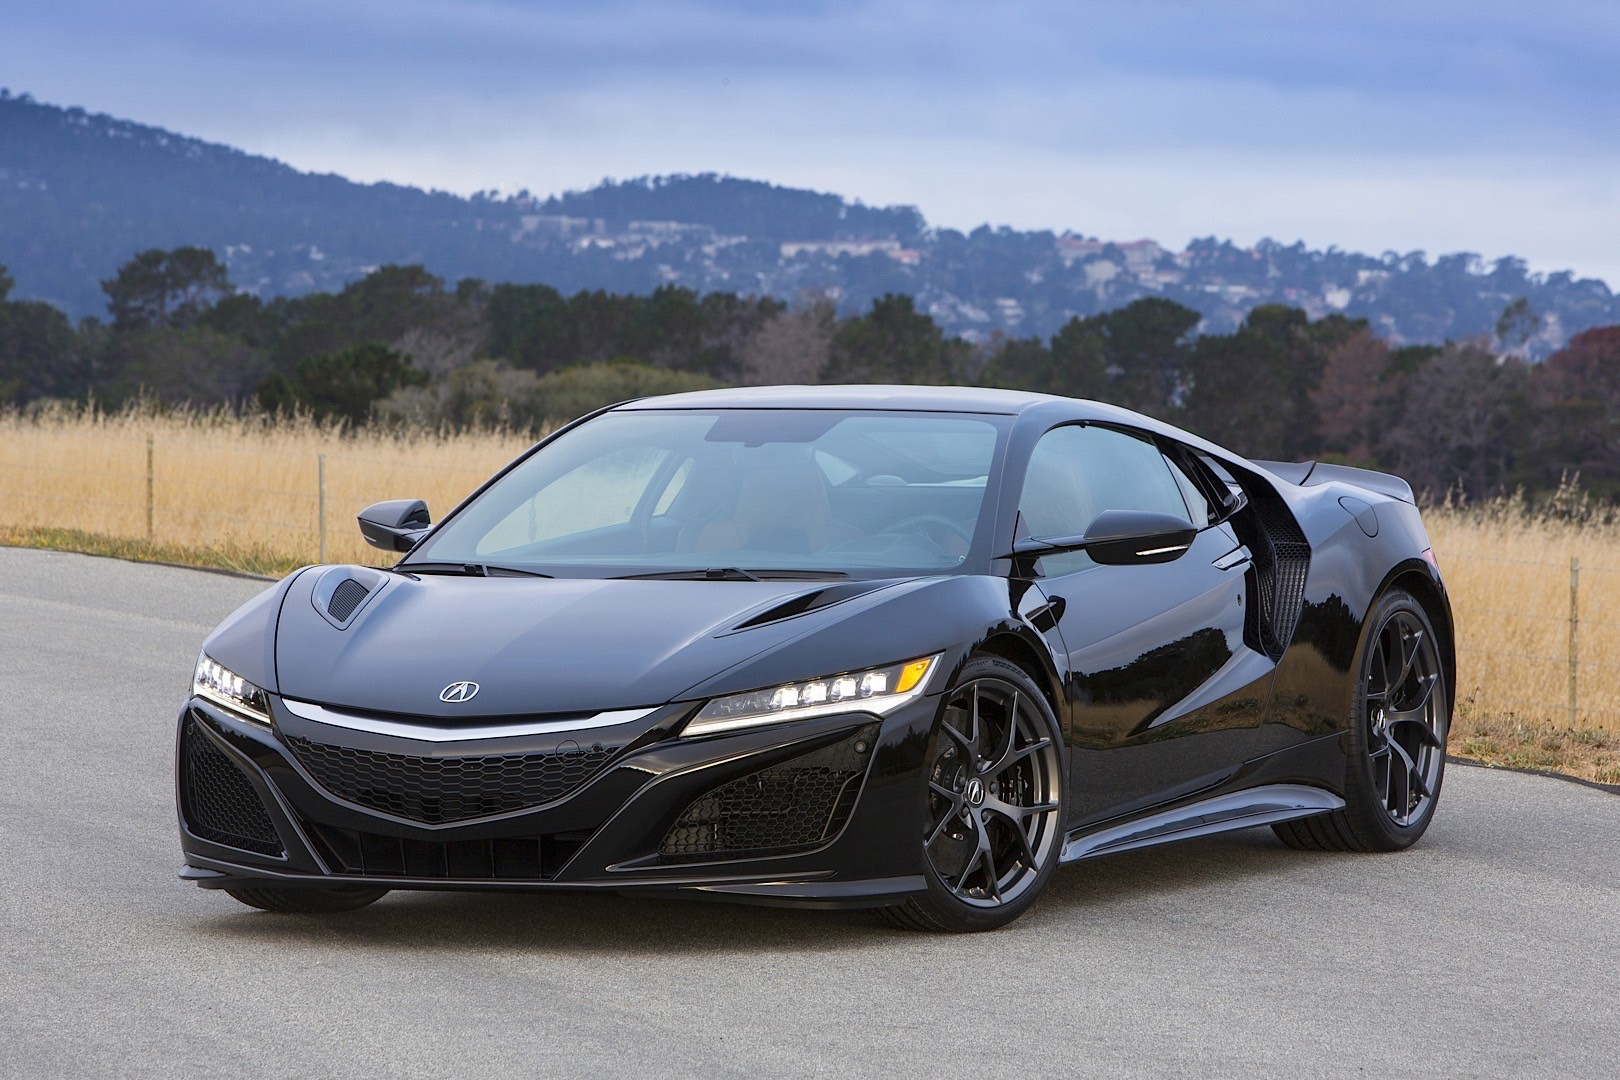 Acura Tells Us More About How the 2017 NSX Will Be Built - autoevolution